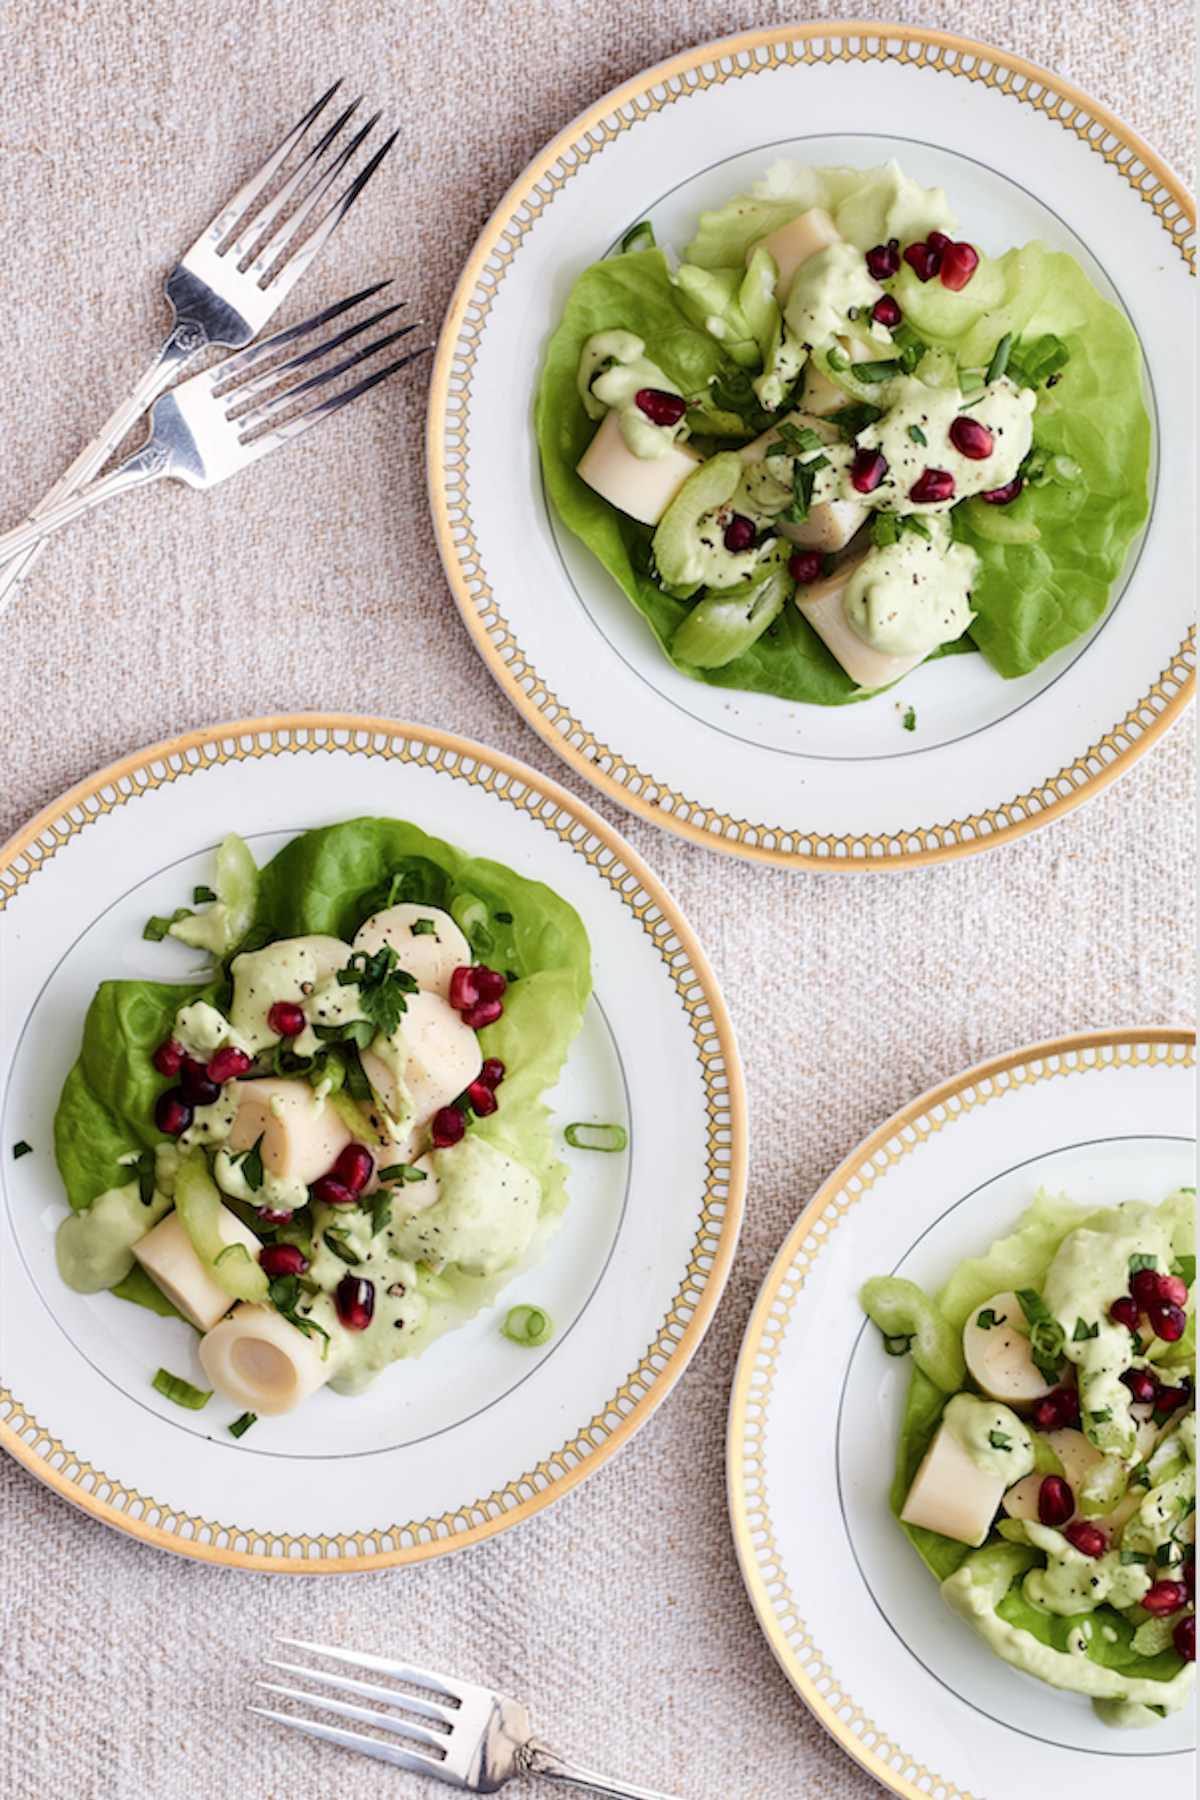 Hearts of Palm Salad with Creamy Avocado Dressing